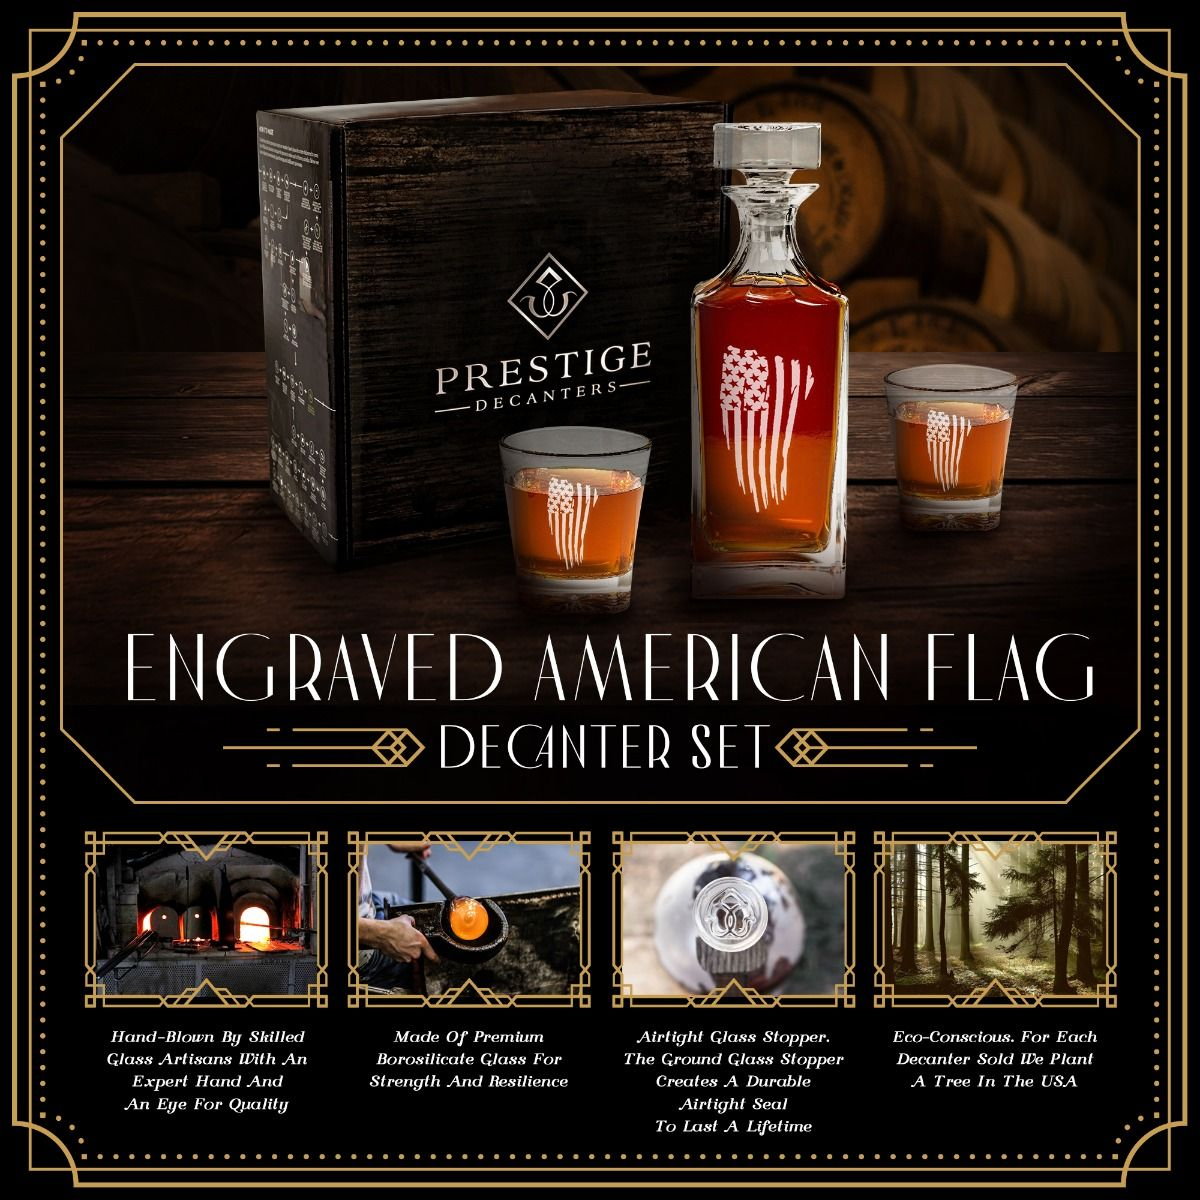 Features of Engraved American Flag Decanter Set